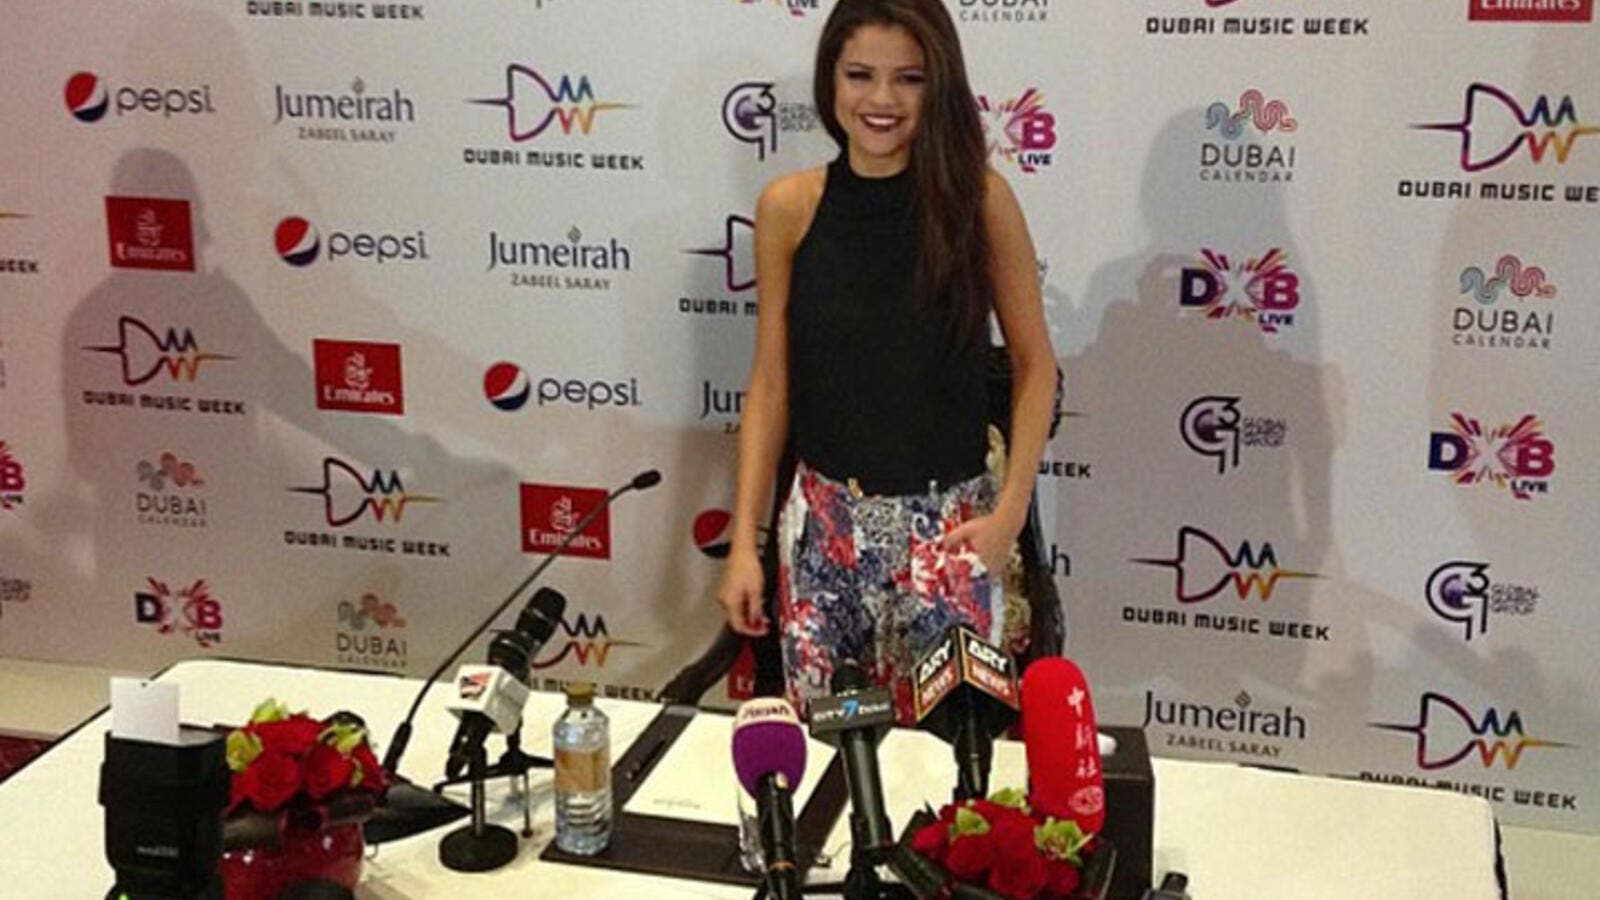 Selena Gomez chats it up, but not about Bieber, at a press conference in Dubai on Thursday. (Image: Facebook)